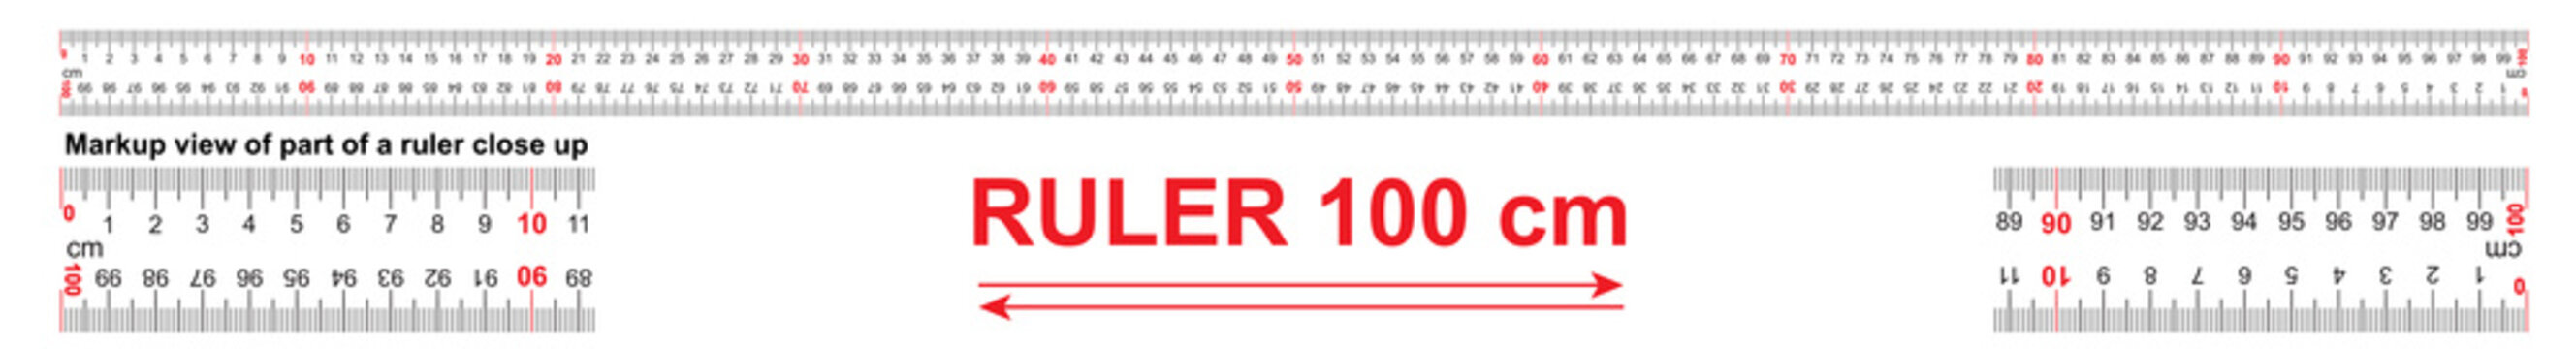 Bidirectional ruler 100 cm or 1000 mm. Used in construction, engineering, clothing manufacturing, carpentry.